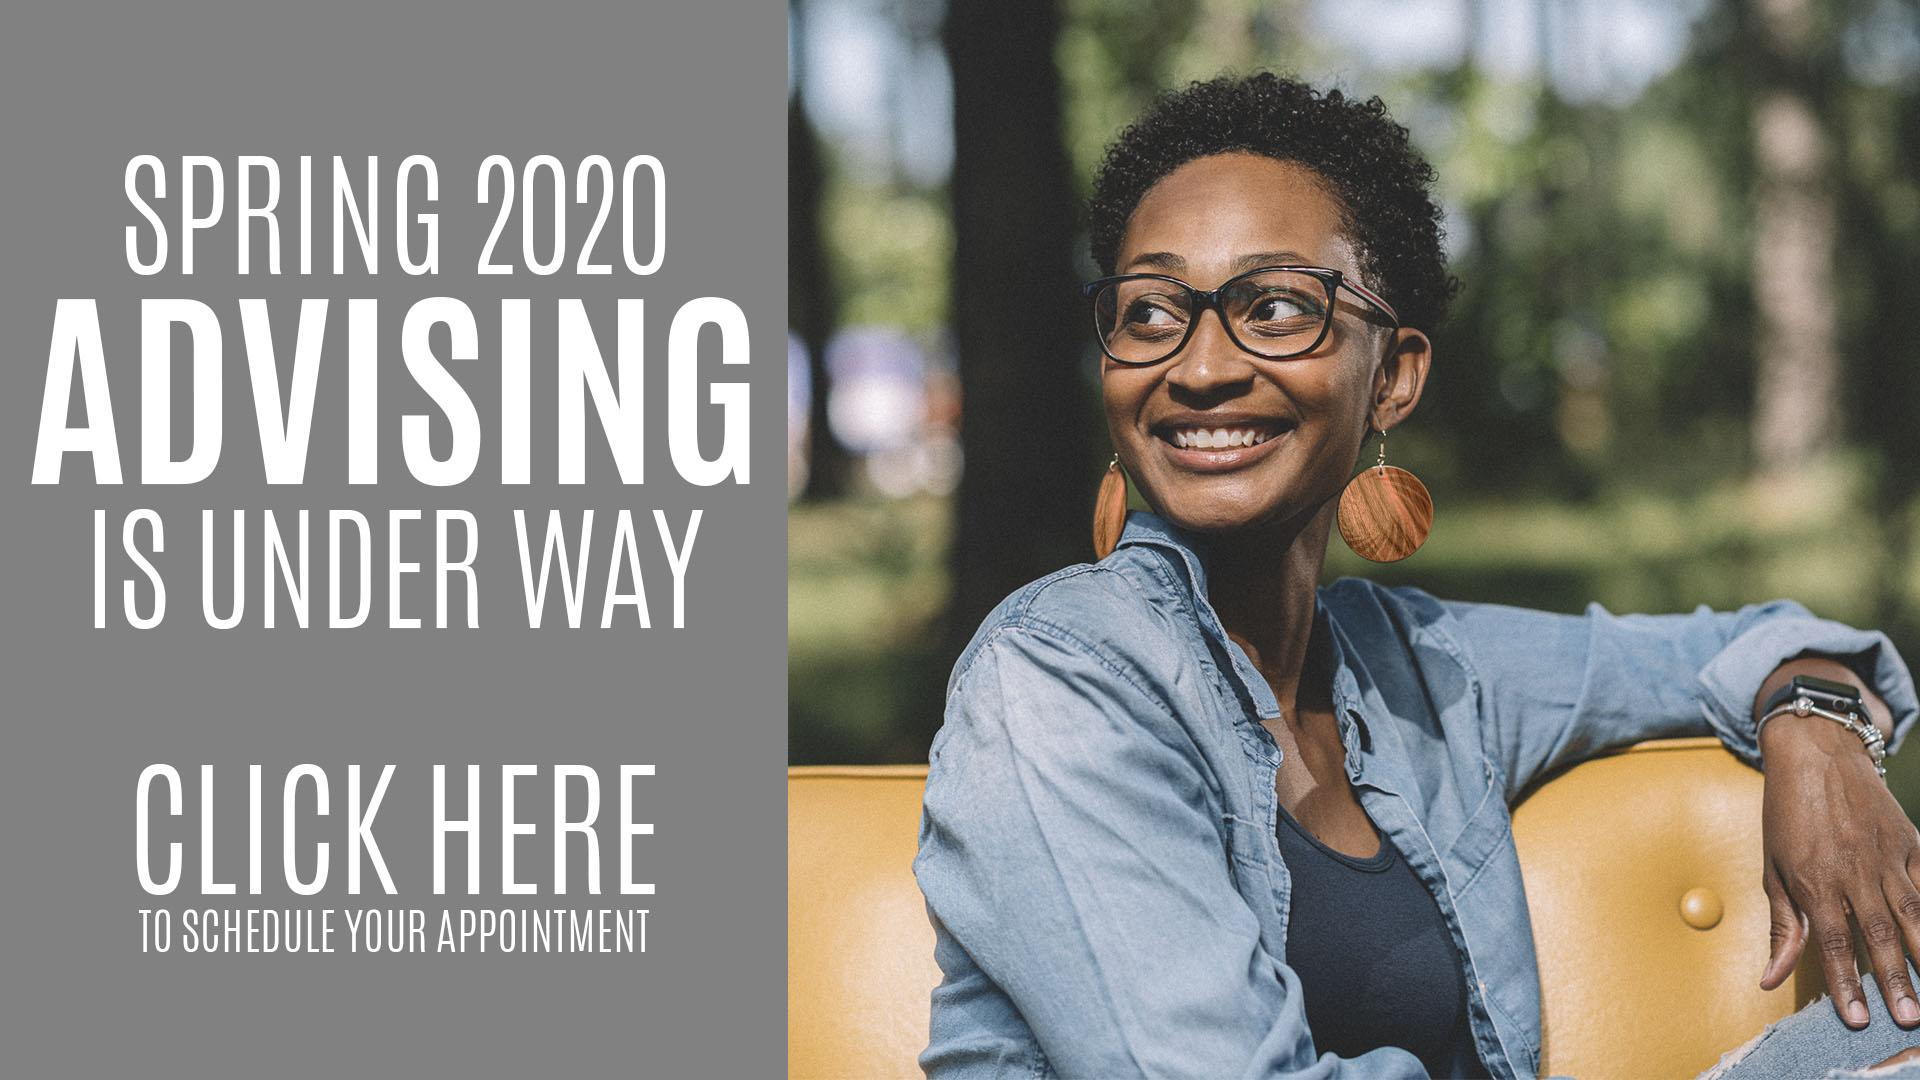 Spring 2020 Advising is Under Way. Click here to schedule your appointment